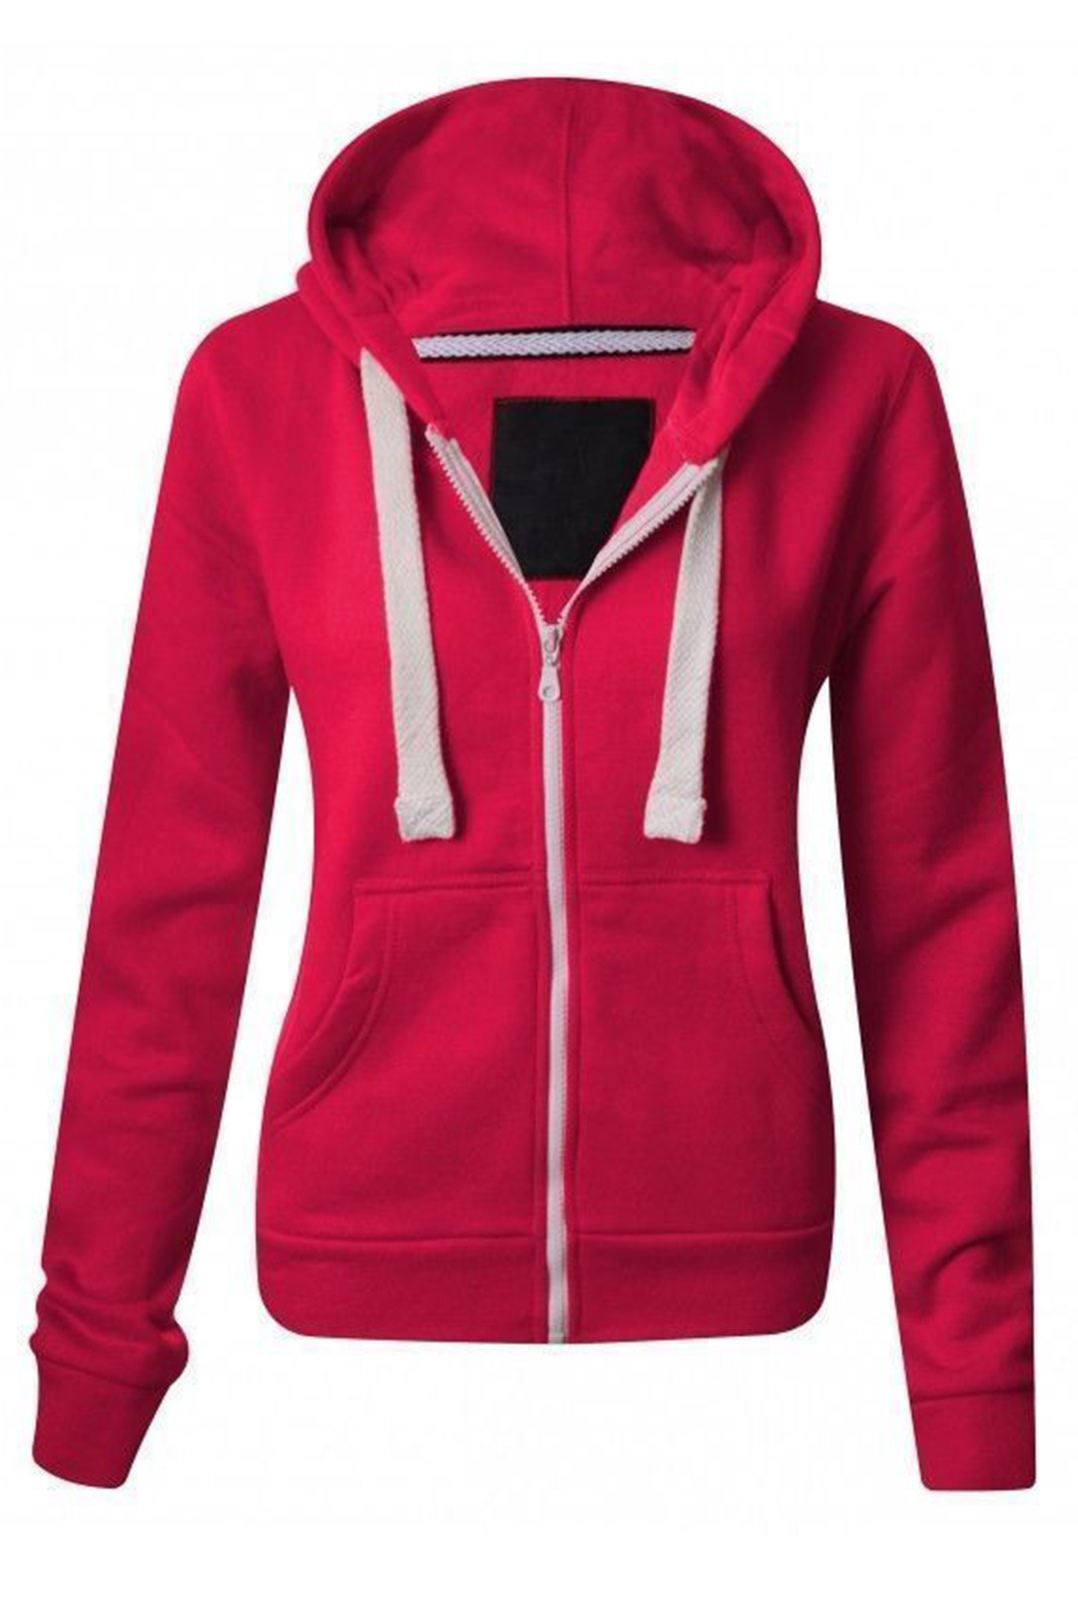 Womens Ladies Plain Hoodie Fleece Sweatshirt Hooded Coat ...